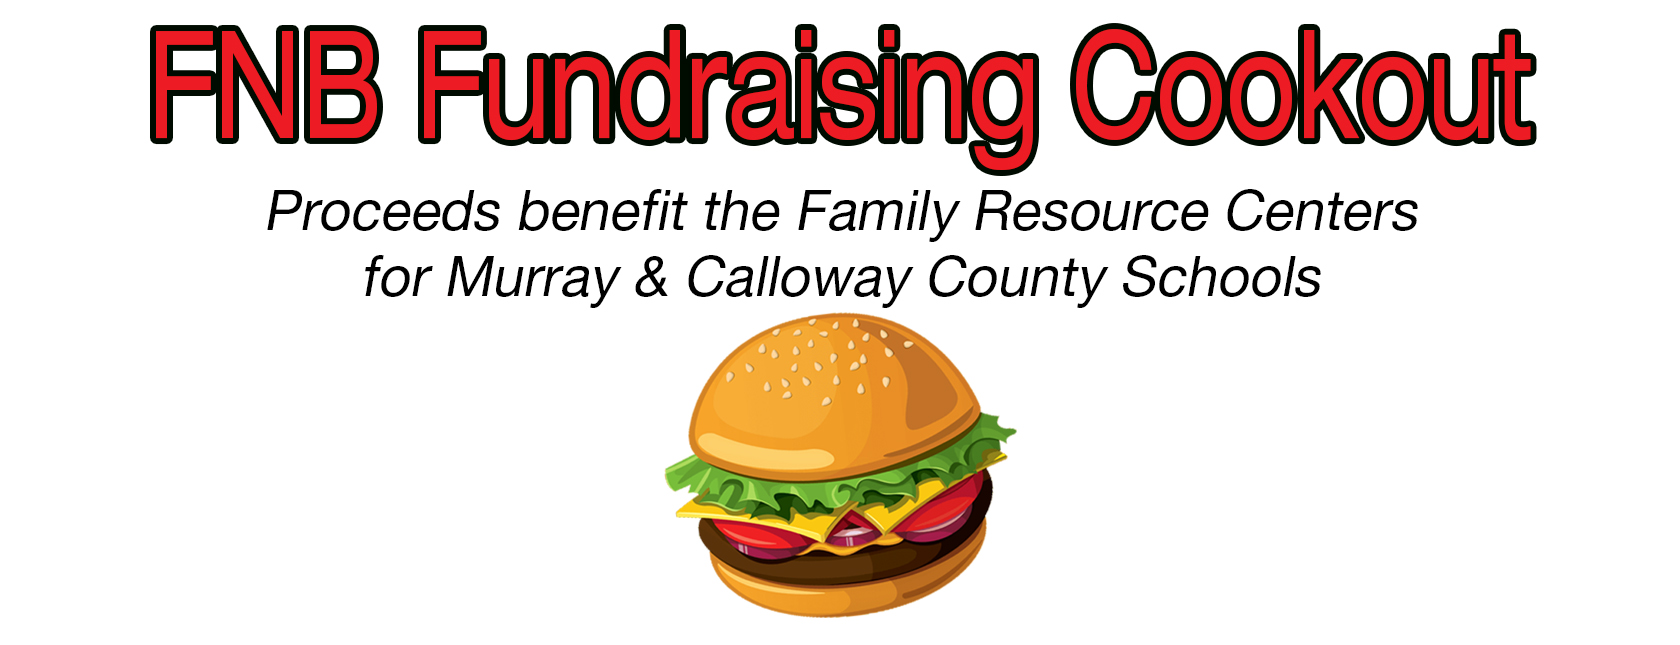 Fundraising Cookout